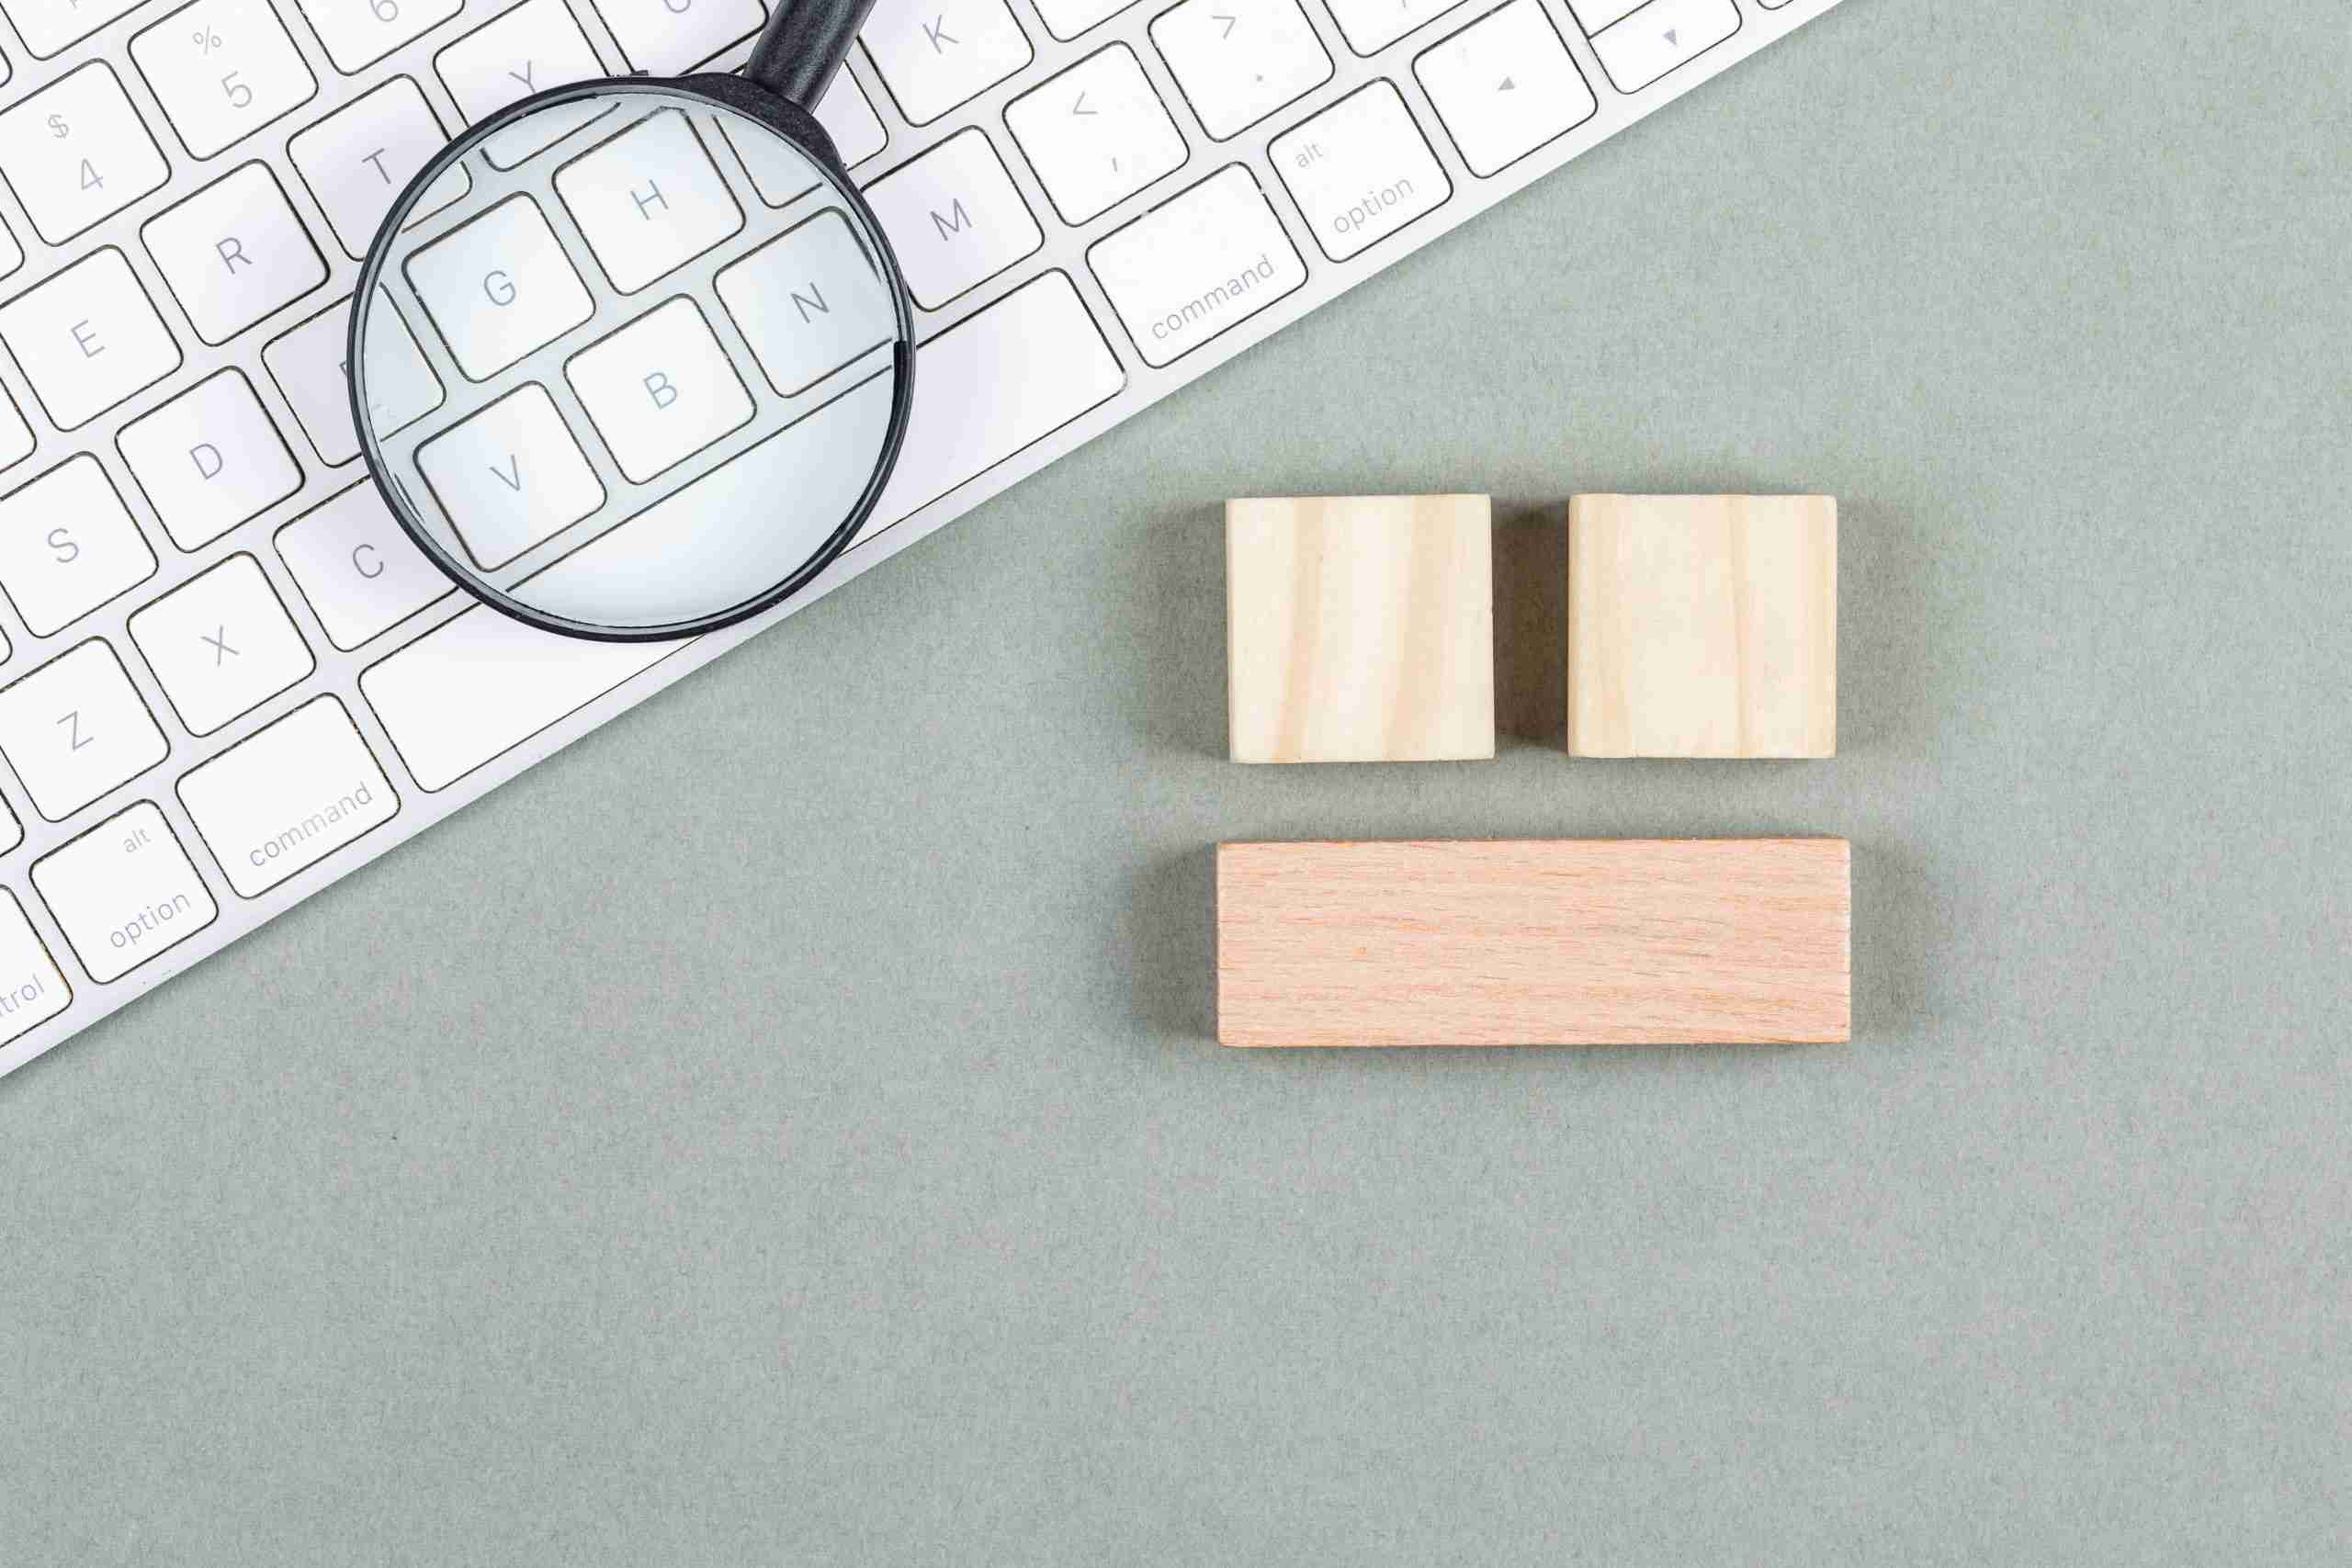 Search concept with magnifier, wooden blocks, keyboard on gray background top view. horizontal image